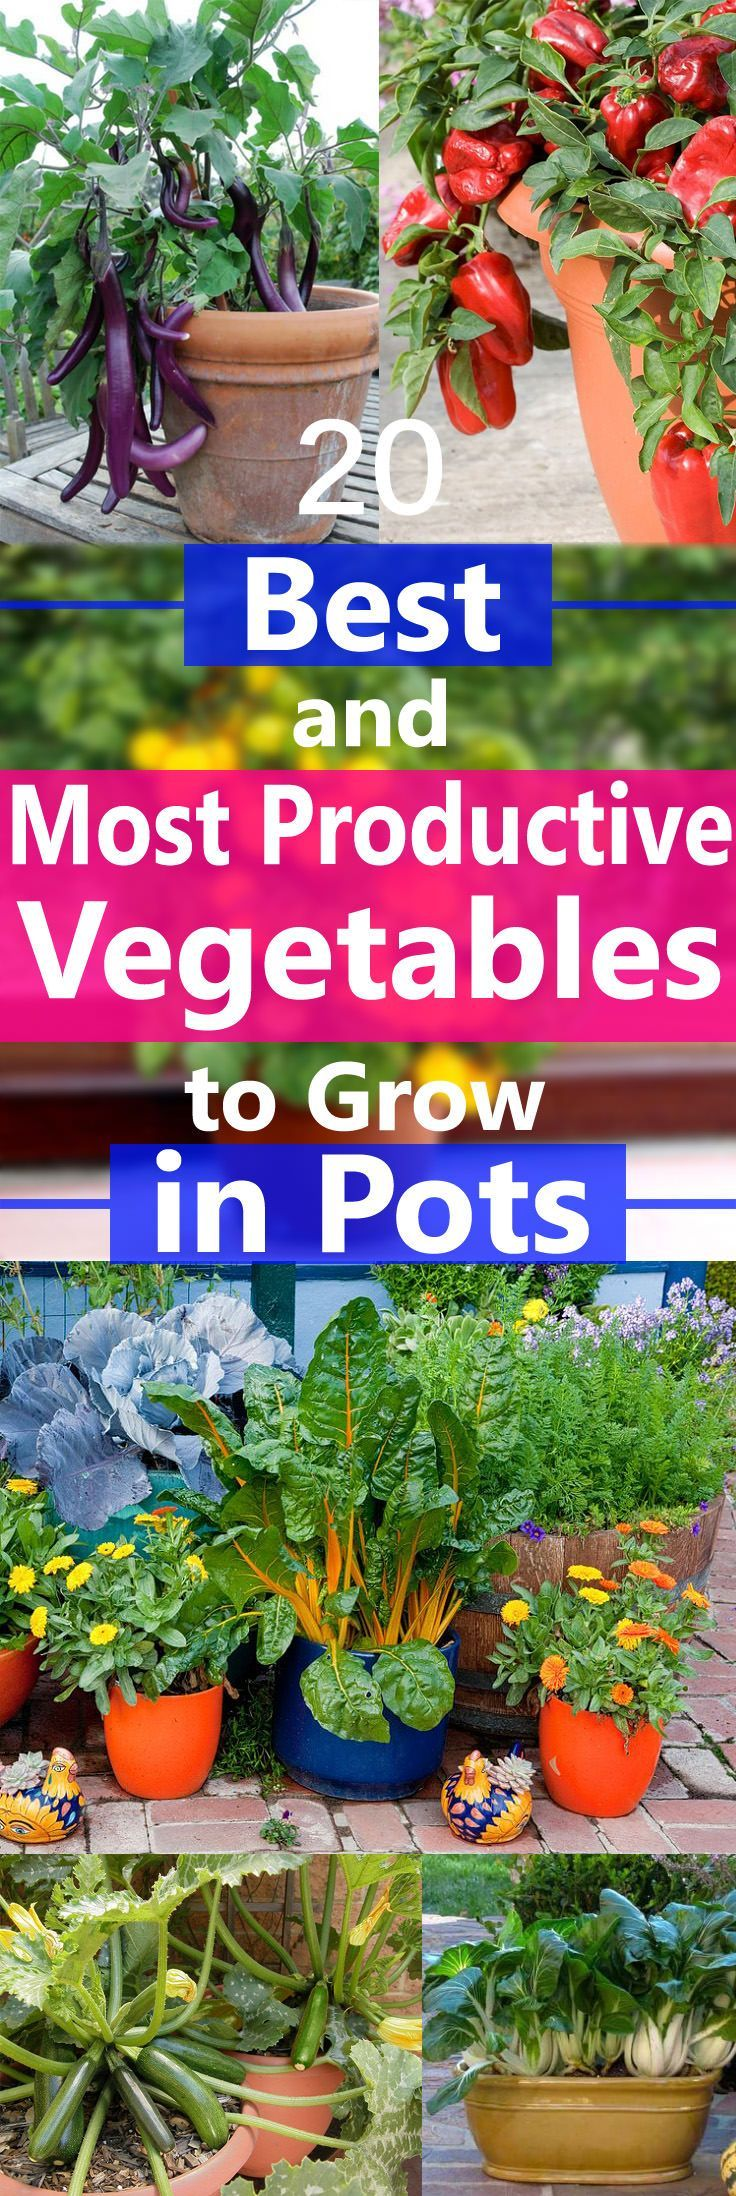 best 25 container gardening ideas on pinterest growing vegetables greenhouse gardening and growing herbs in pots